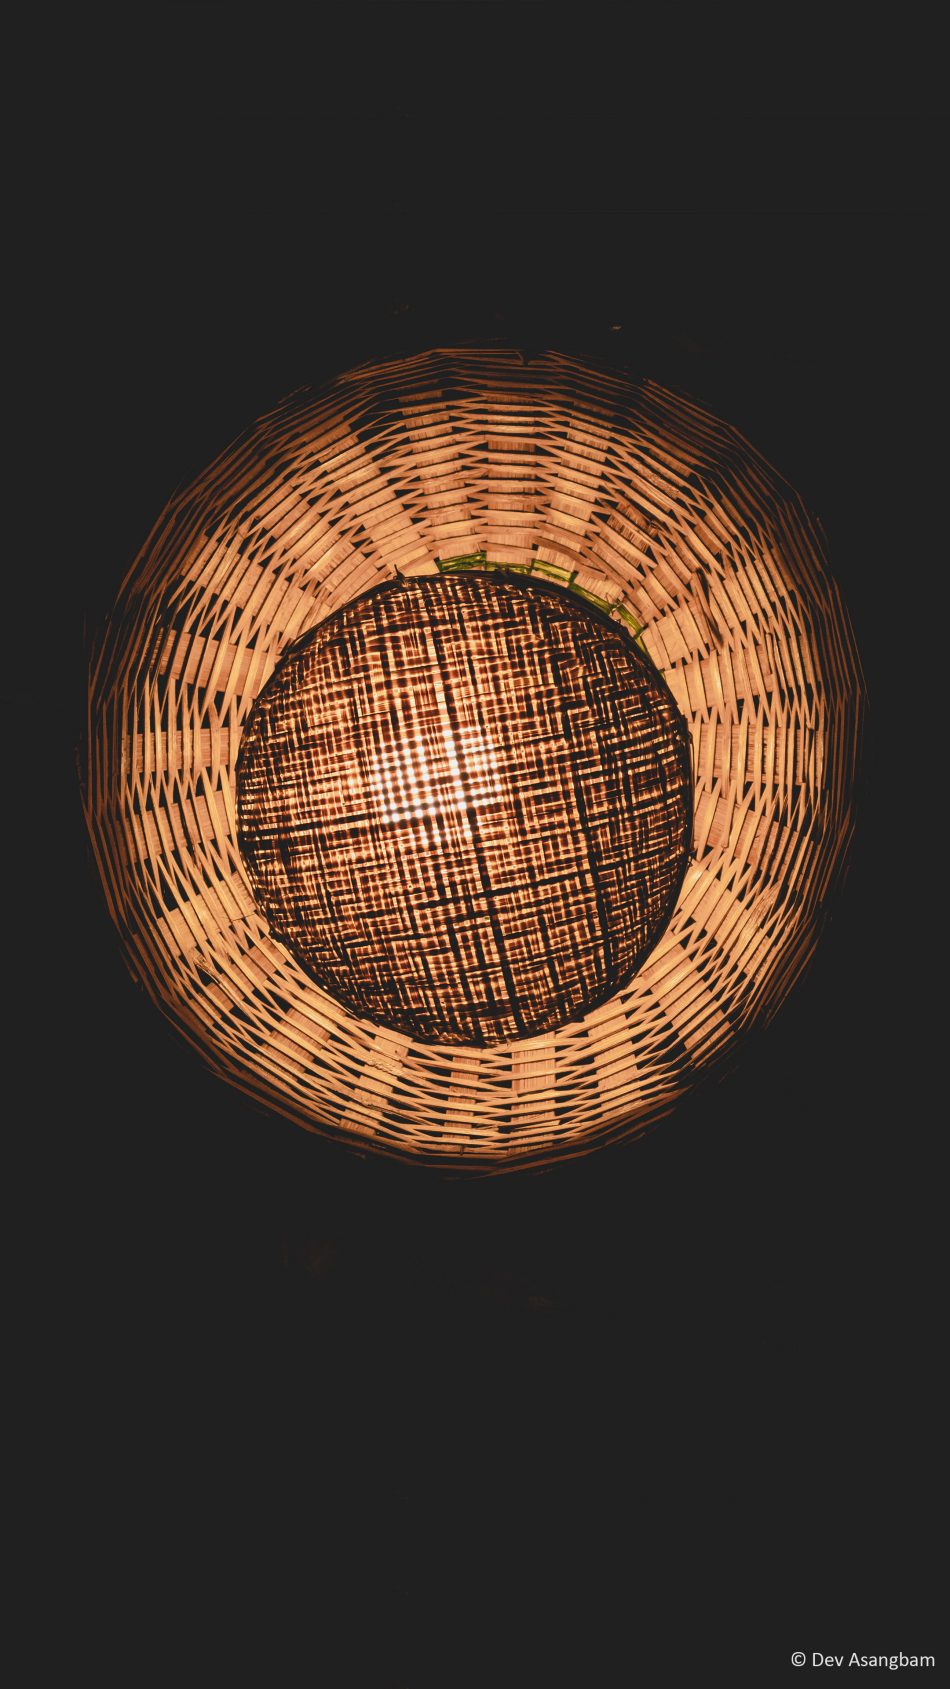 Bulb Bamboo Light Panel 4K Ultra HD Mobile Wallpaper